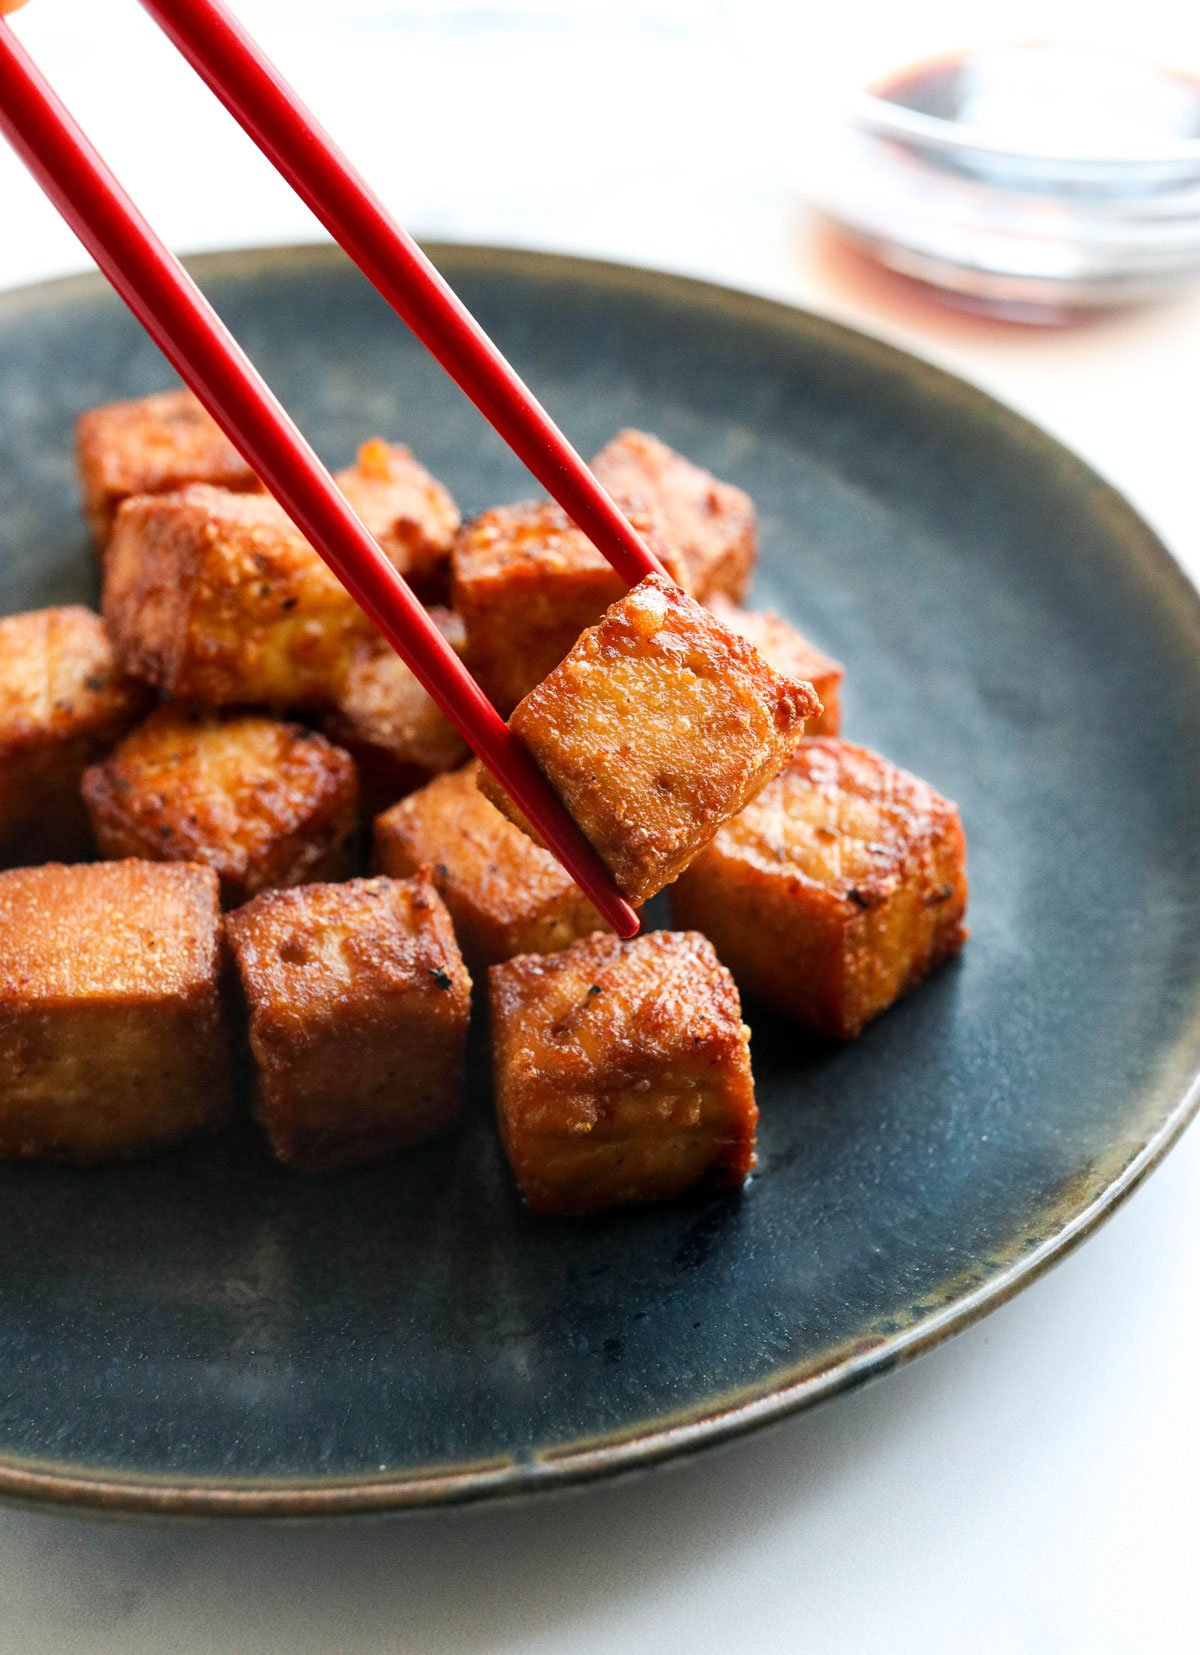 tofu lifted by chopsticks